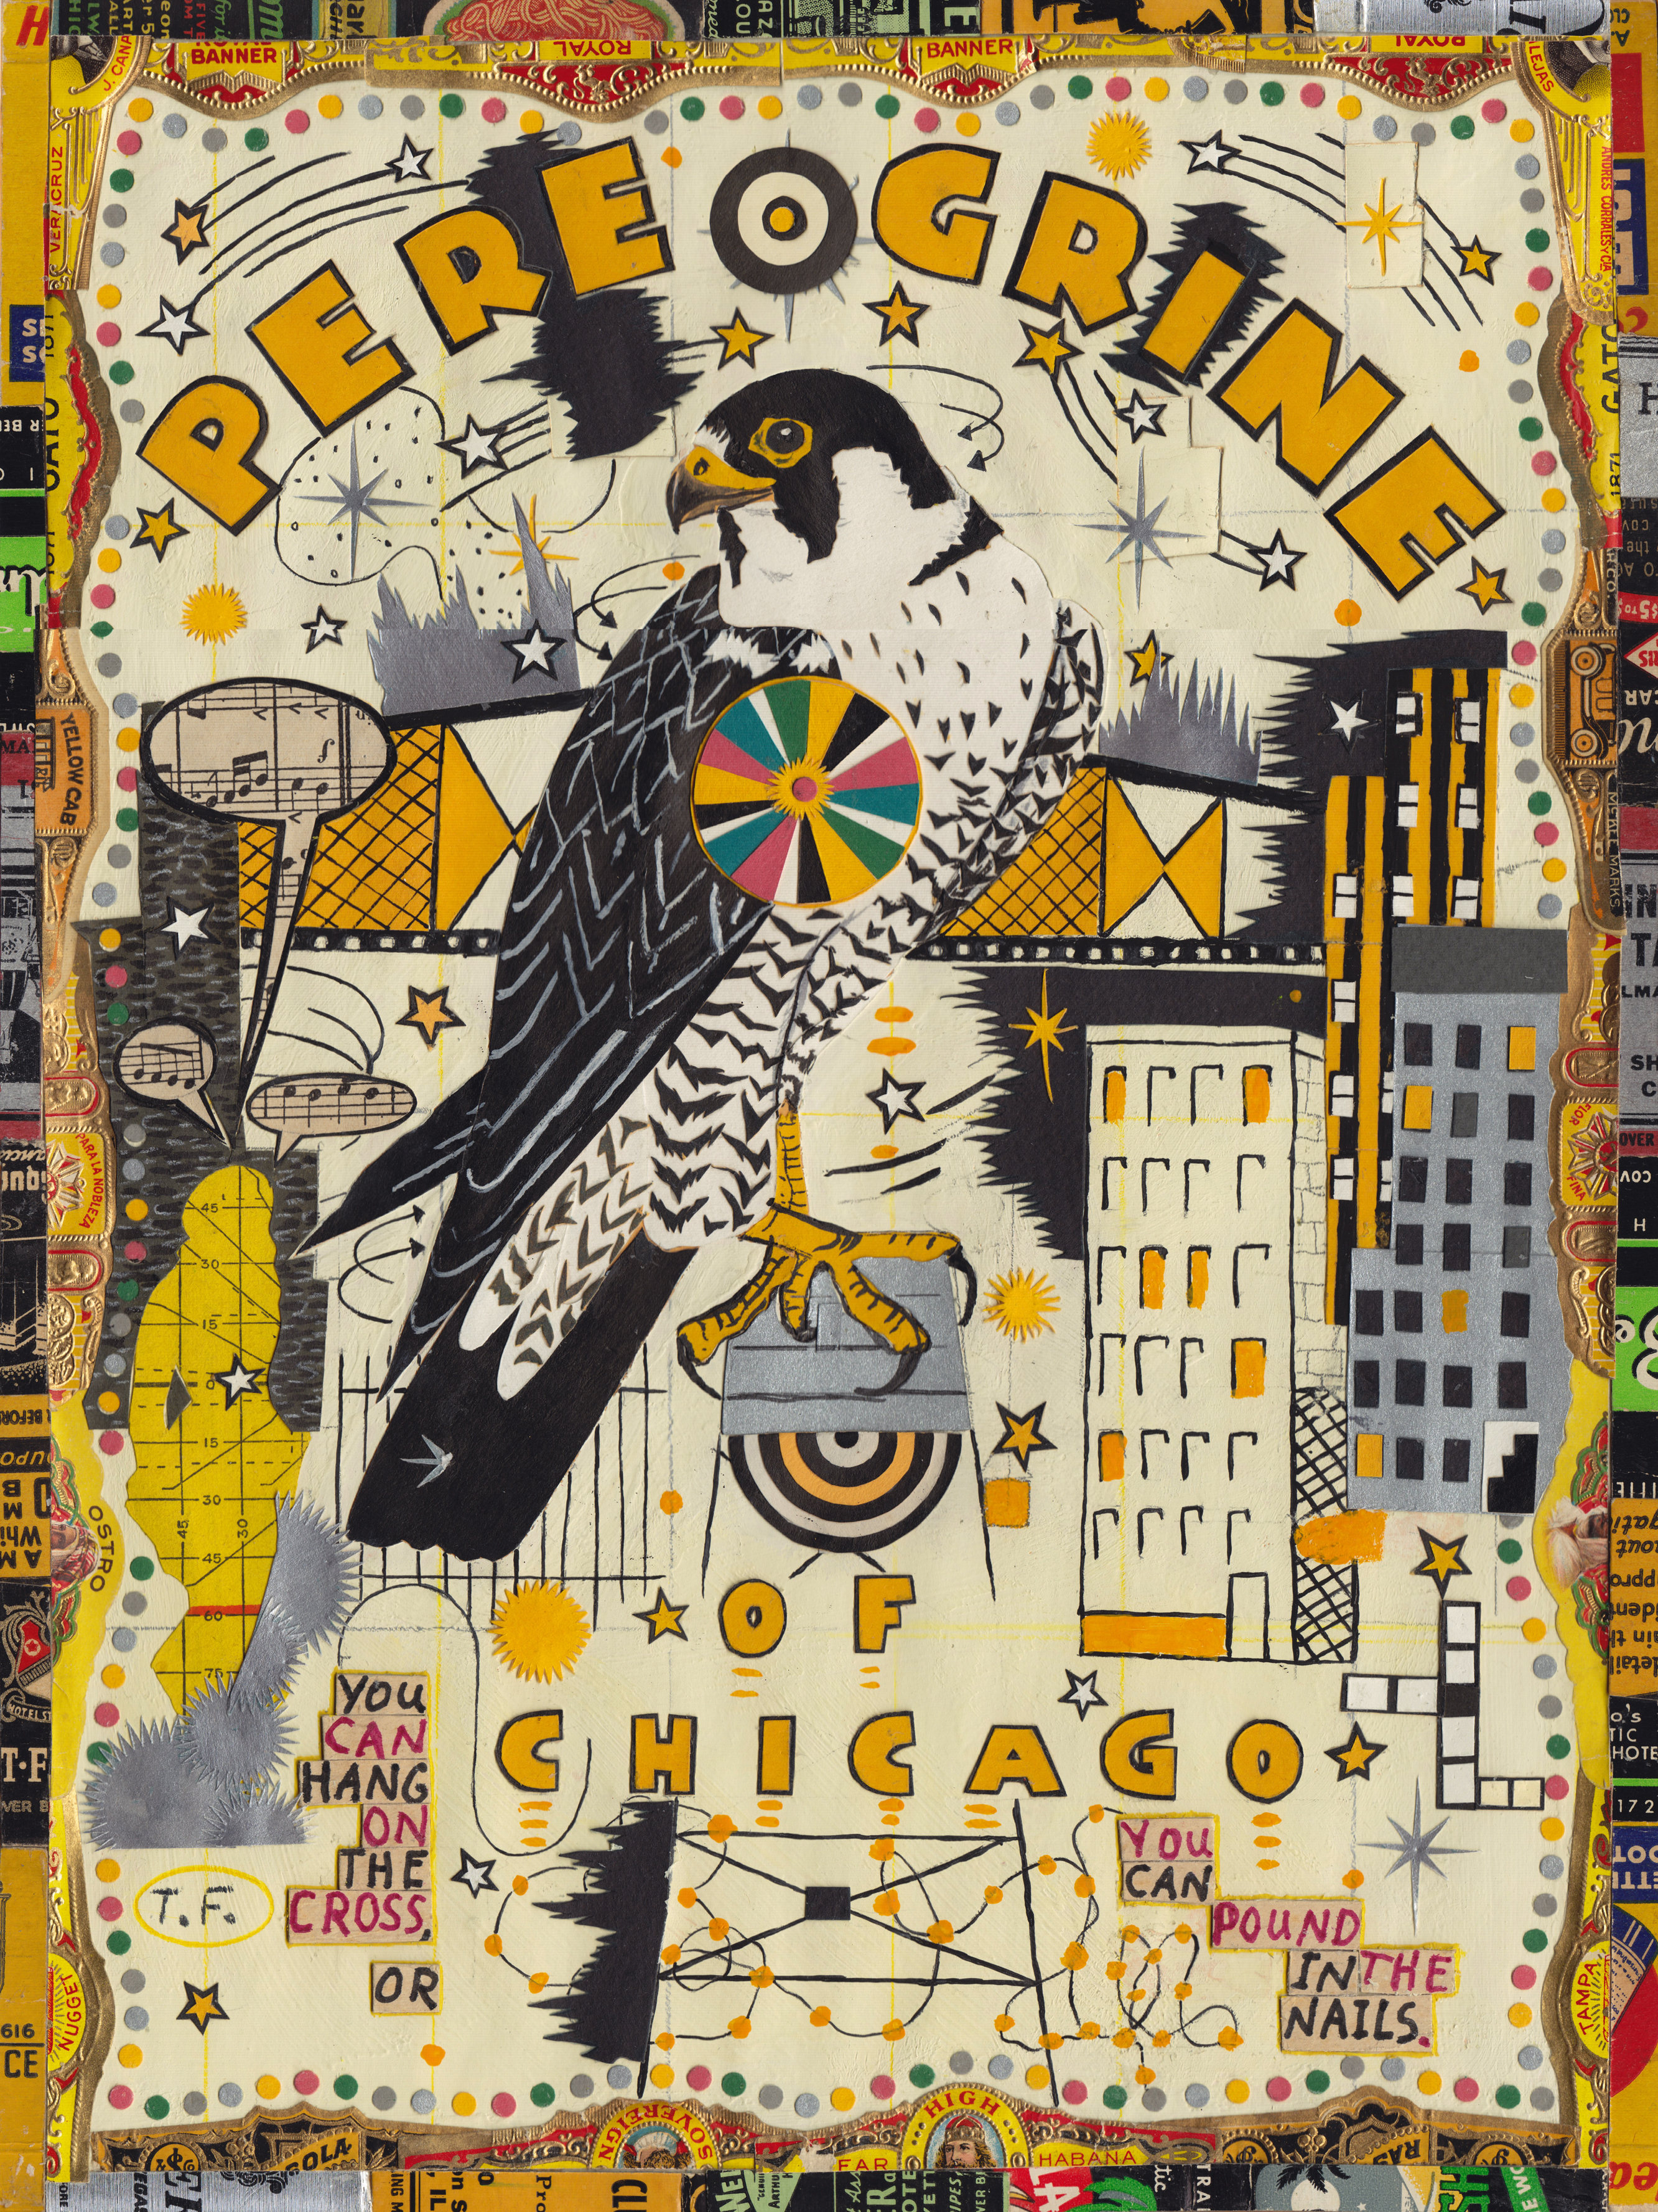 Color printing depaul - Nostalgia For The Small Mean World Of The City A Review Of Tony Fitzpatrick At The Depaul Art Museum